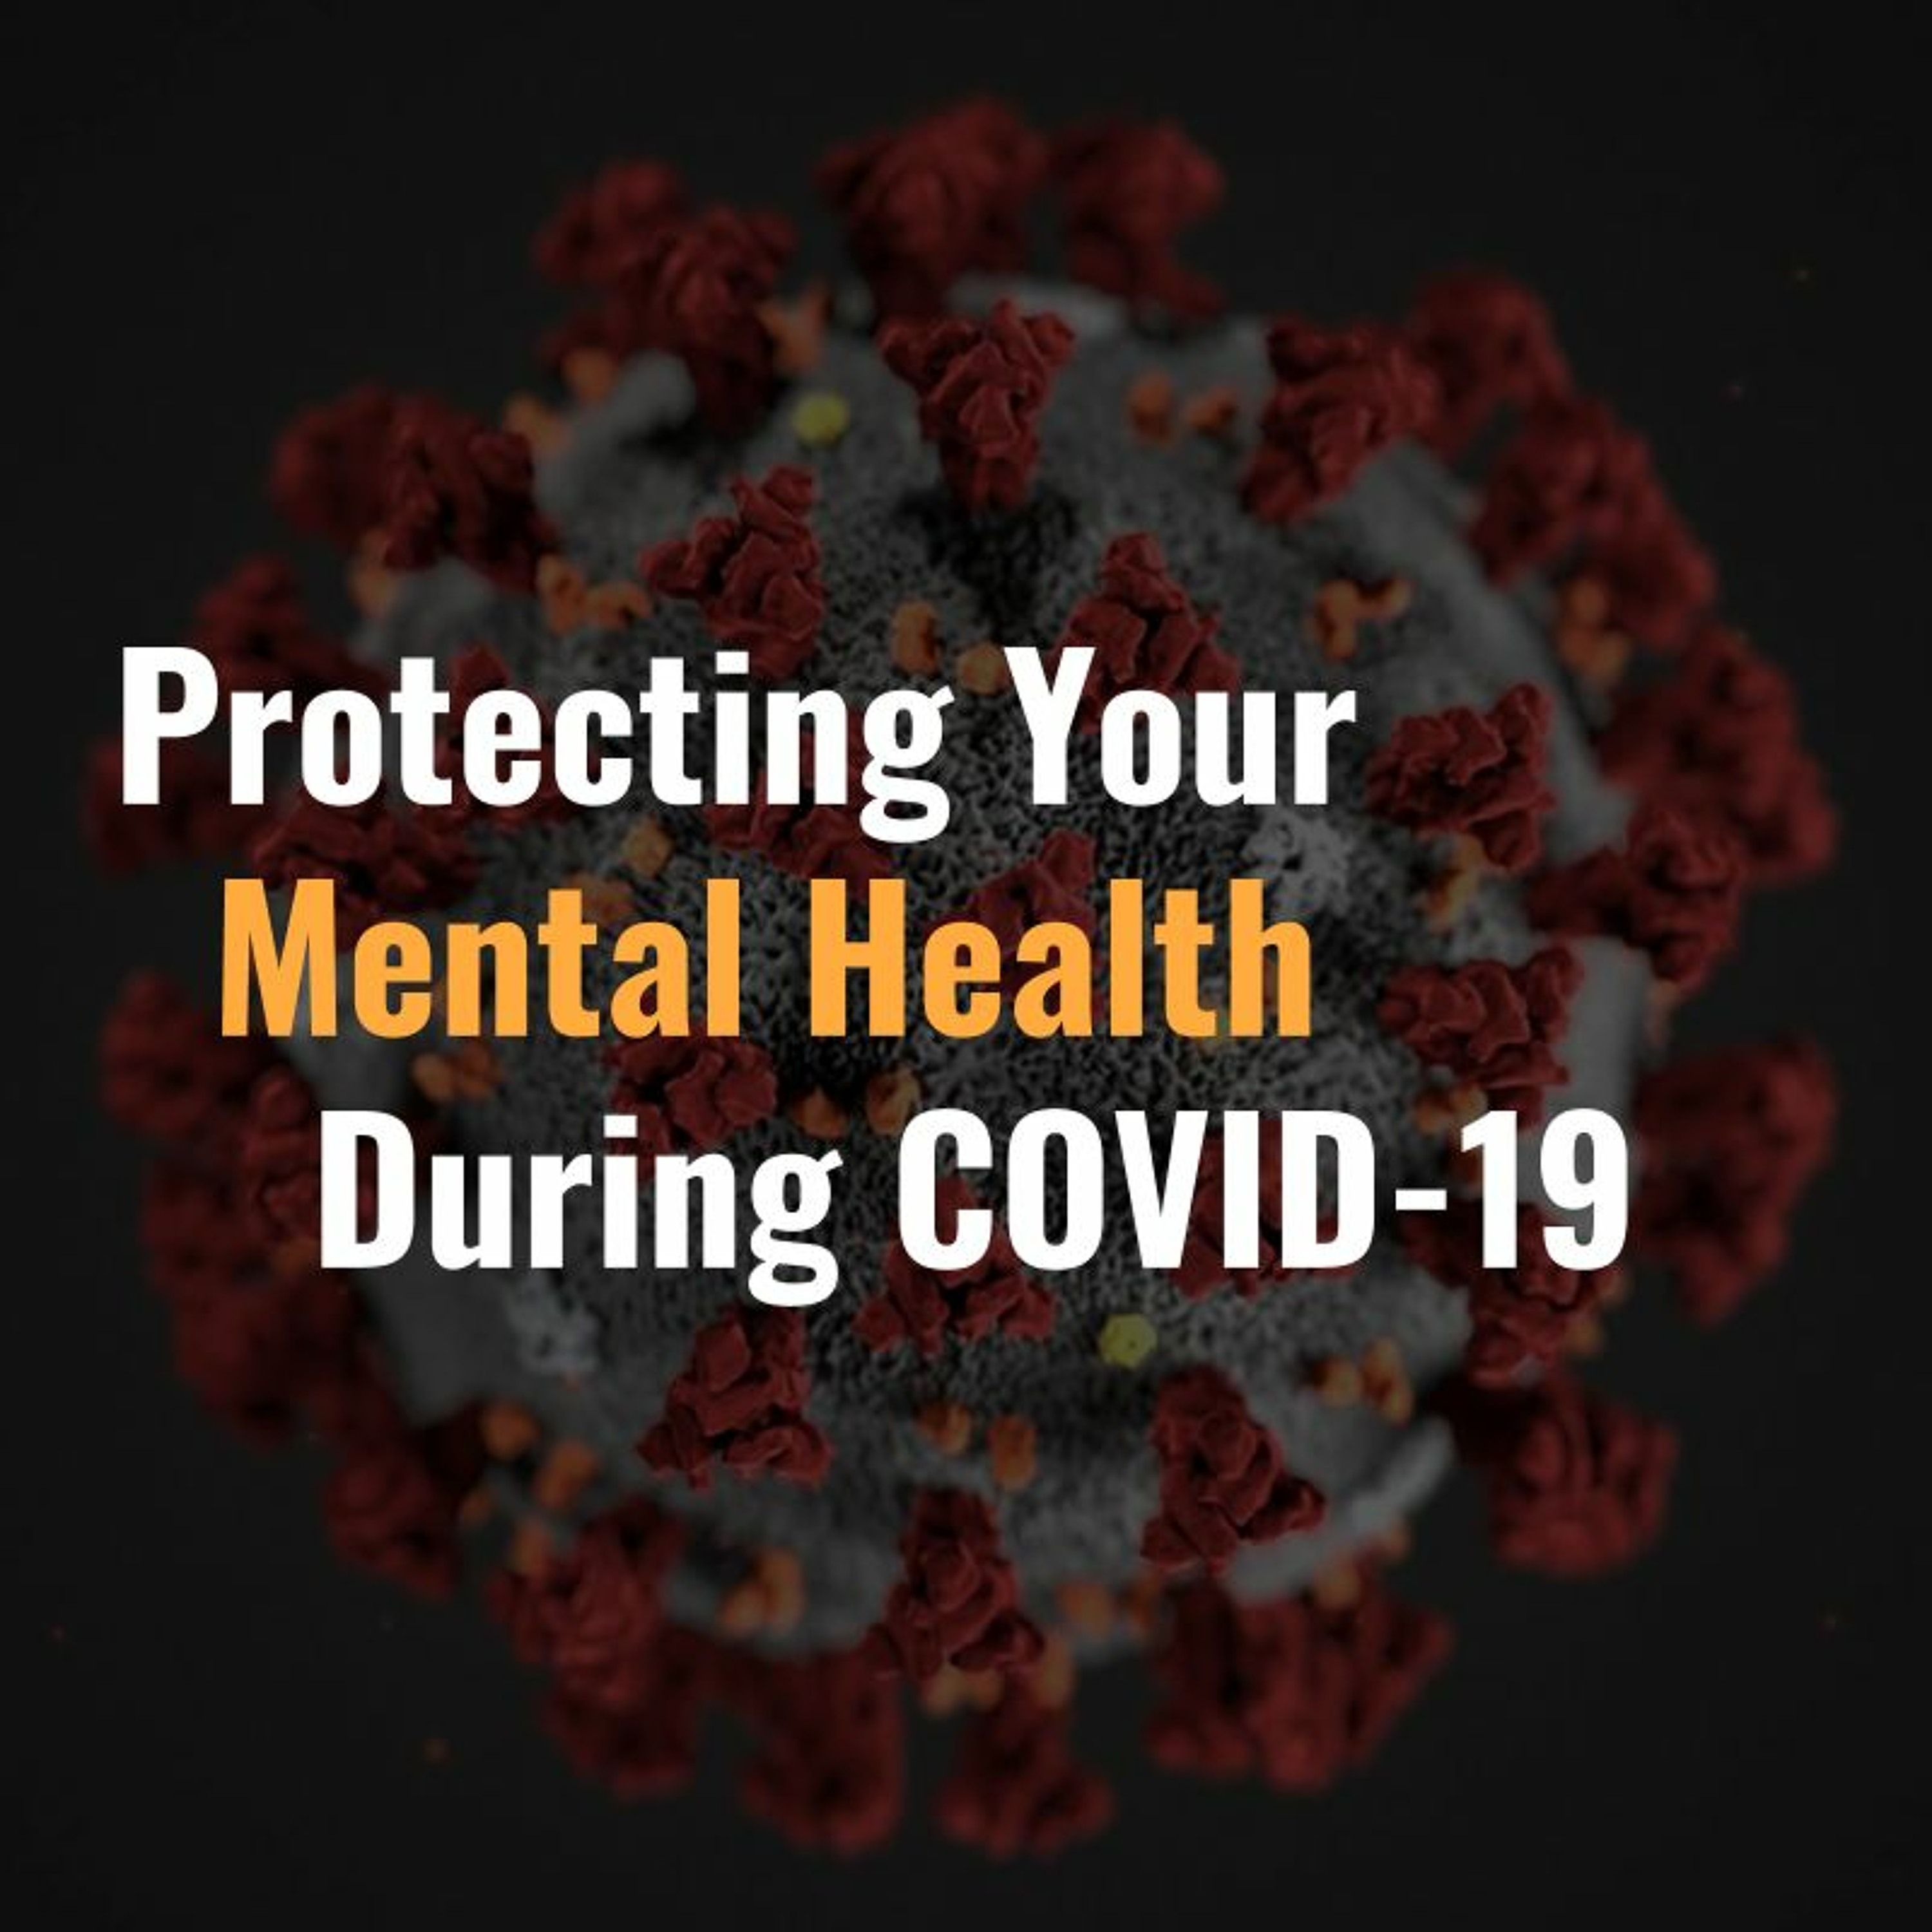 AIRWaves #41: Protecting Your Mental Health During COVID-19